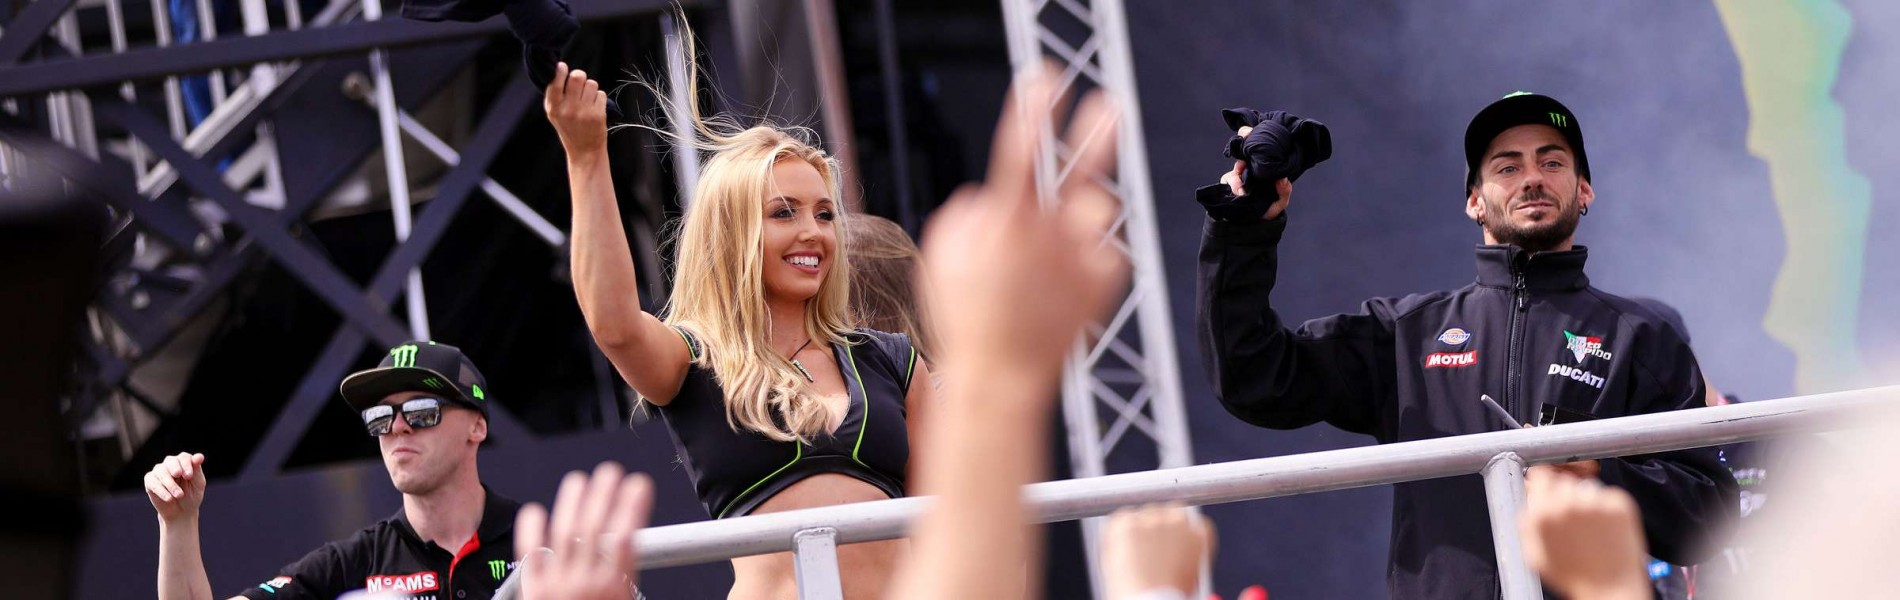 Monster Girls attending the title round of the British Superbikes at Brands Hatch